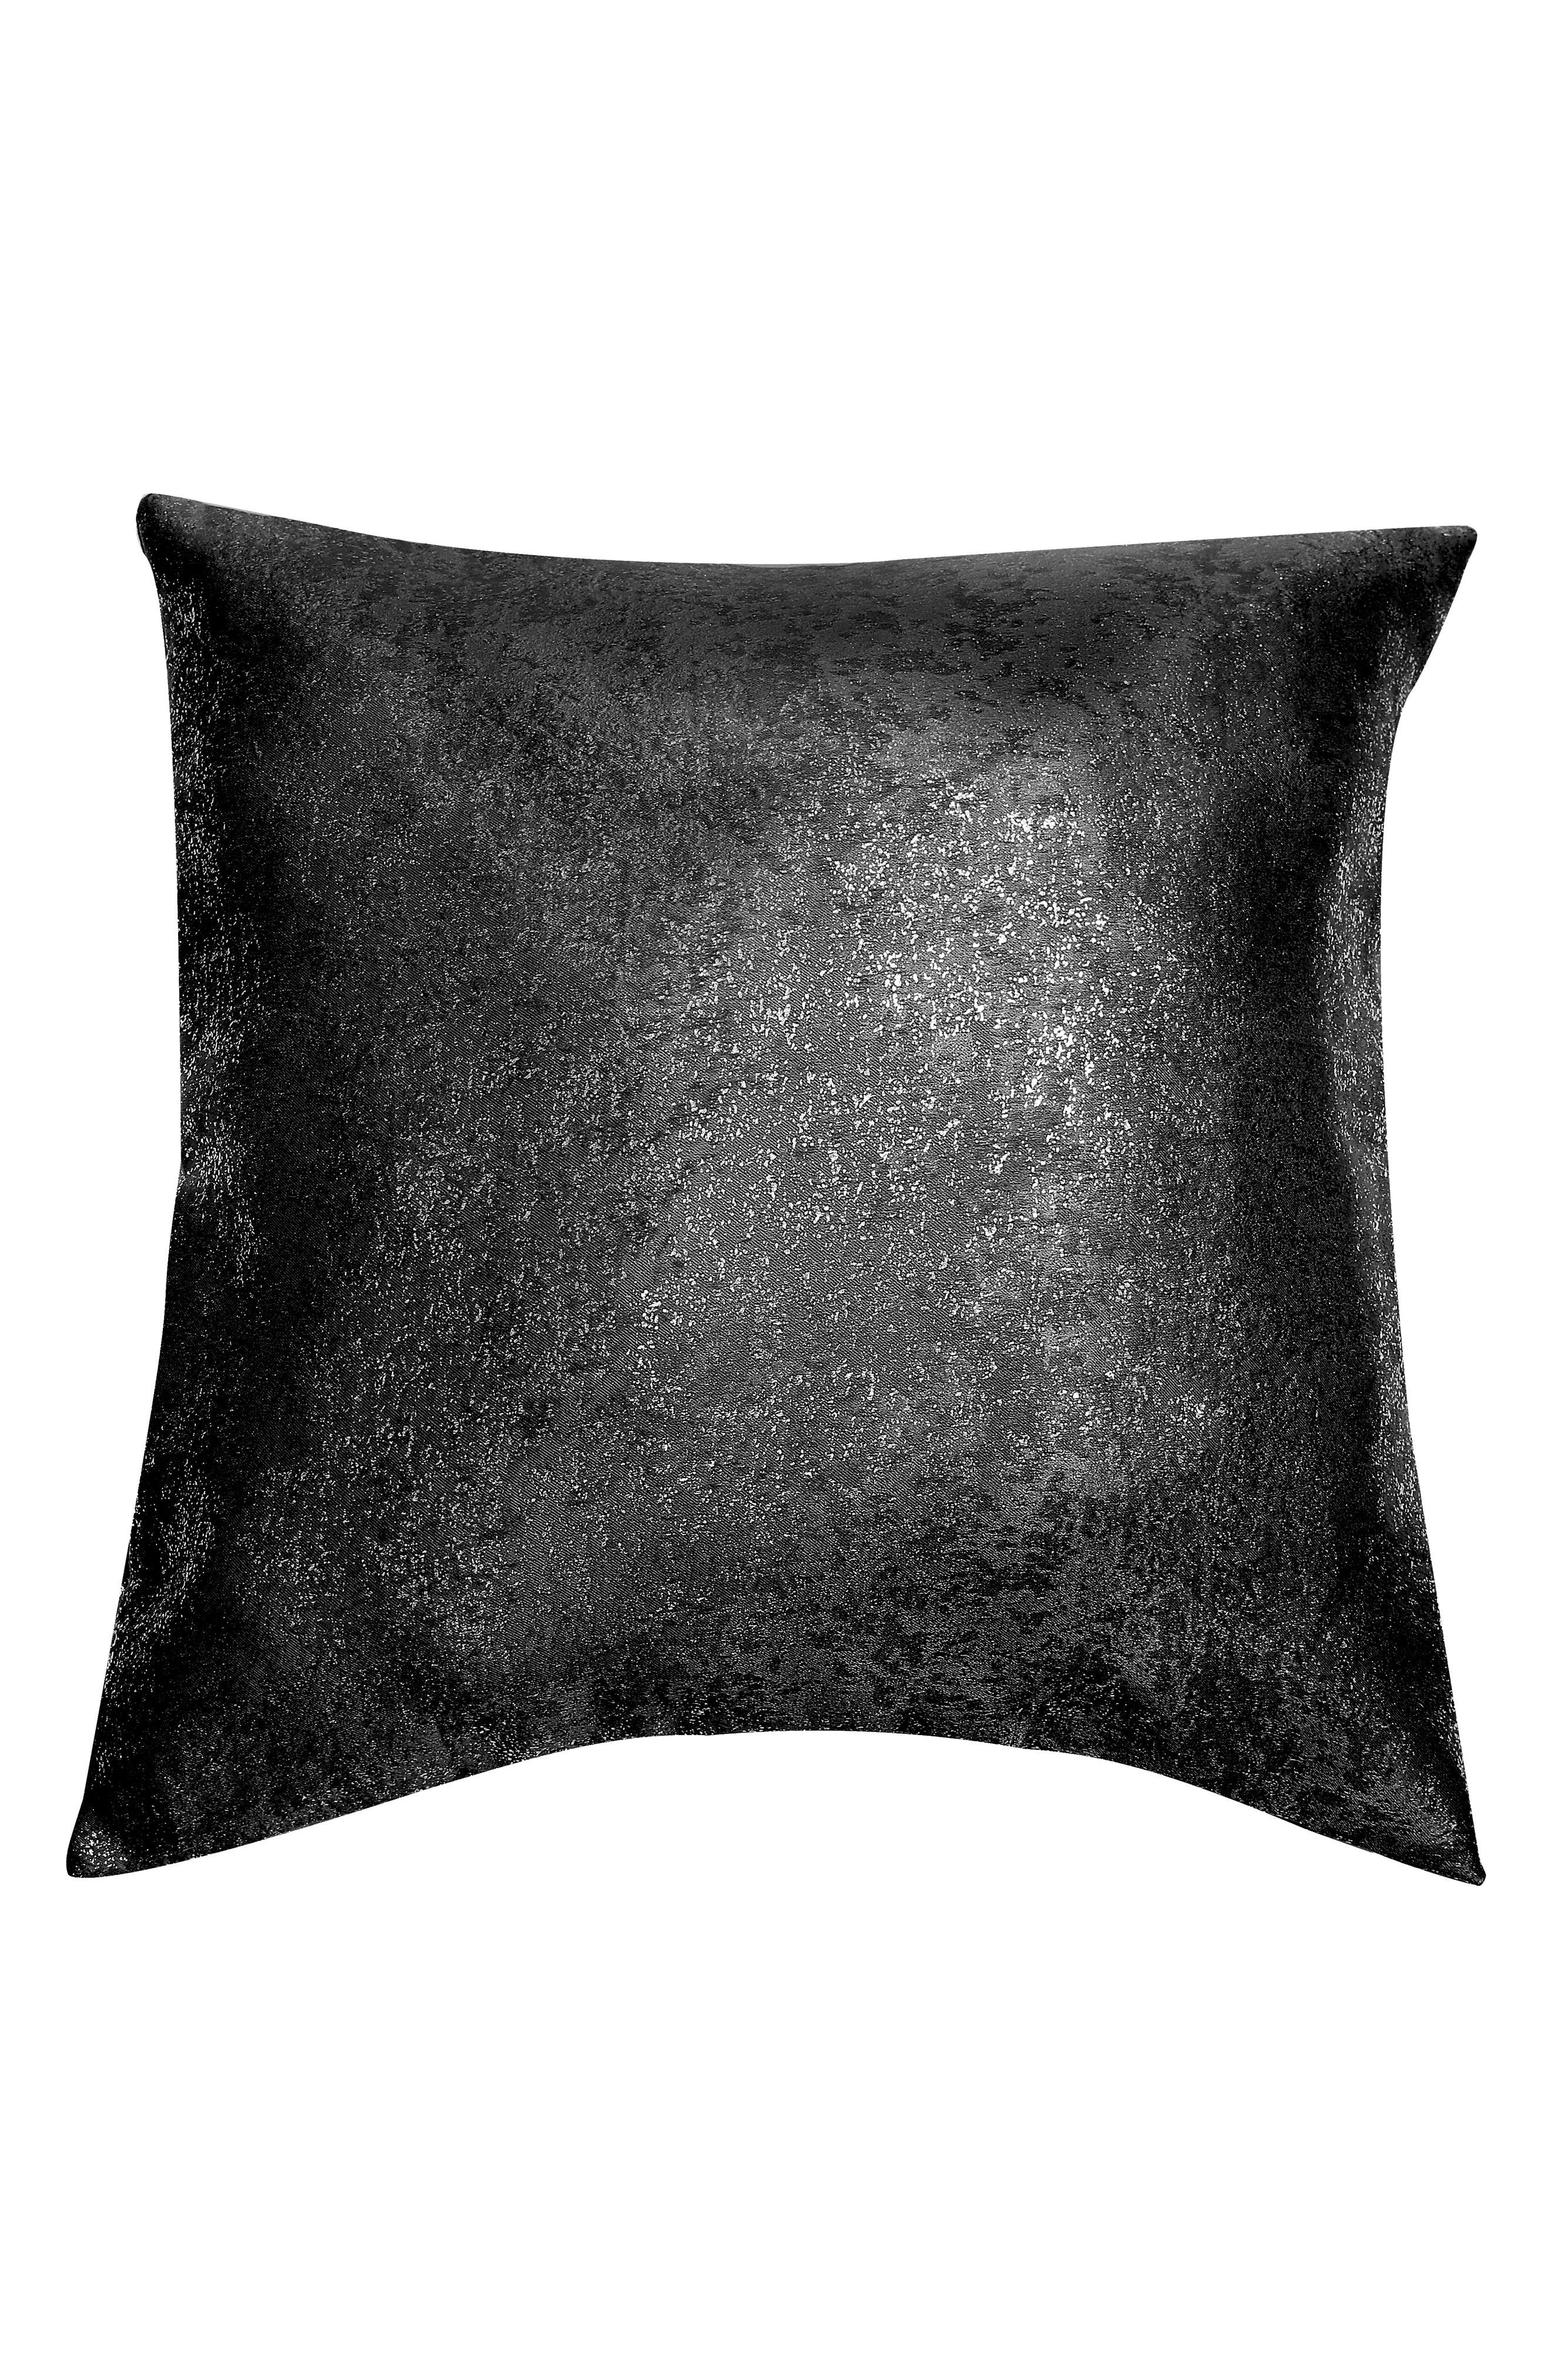 Maddie Accent Pillow,                         Main,                         color, BLACK